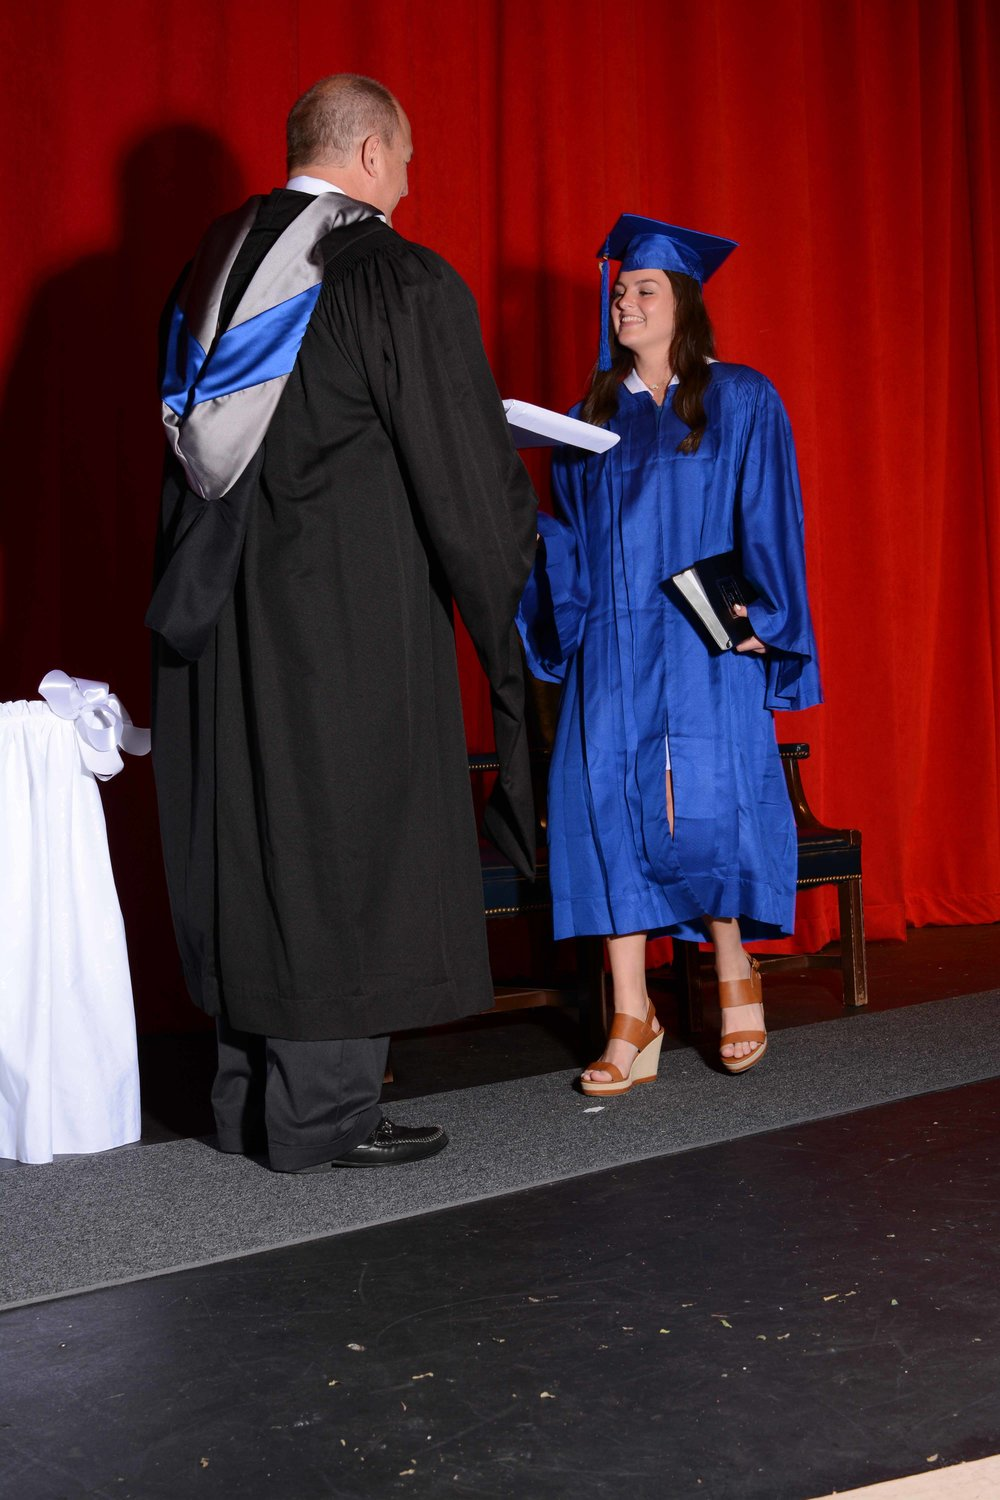 May15 HardingGraduation71.jpg